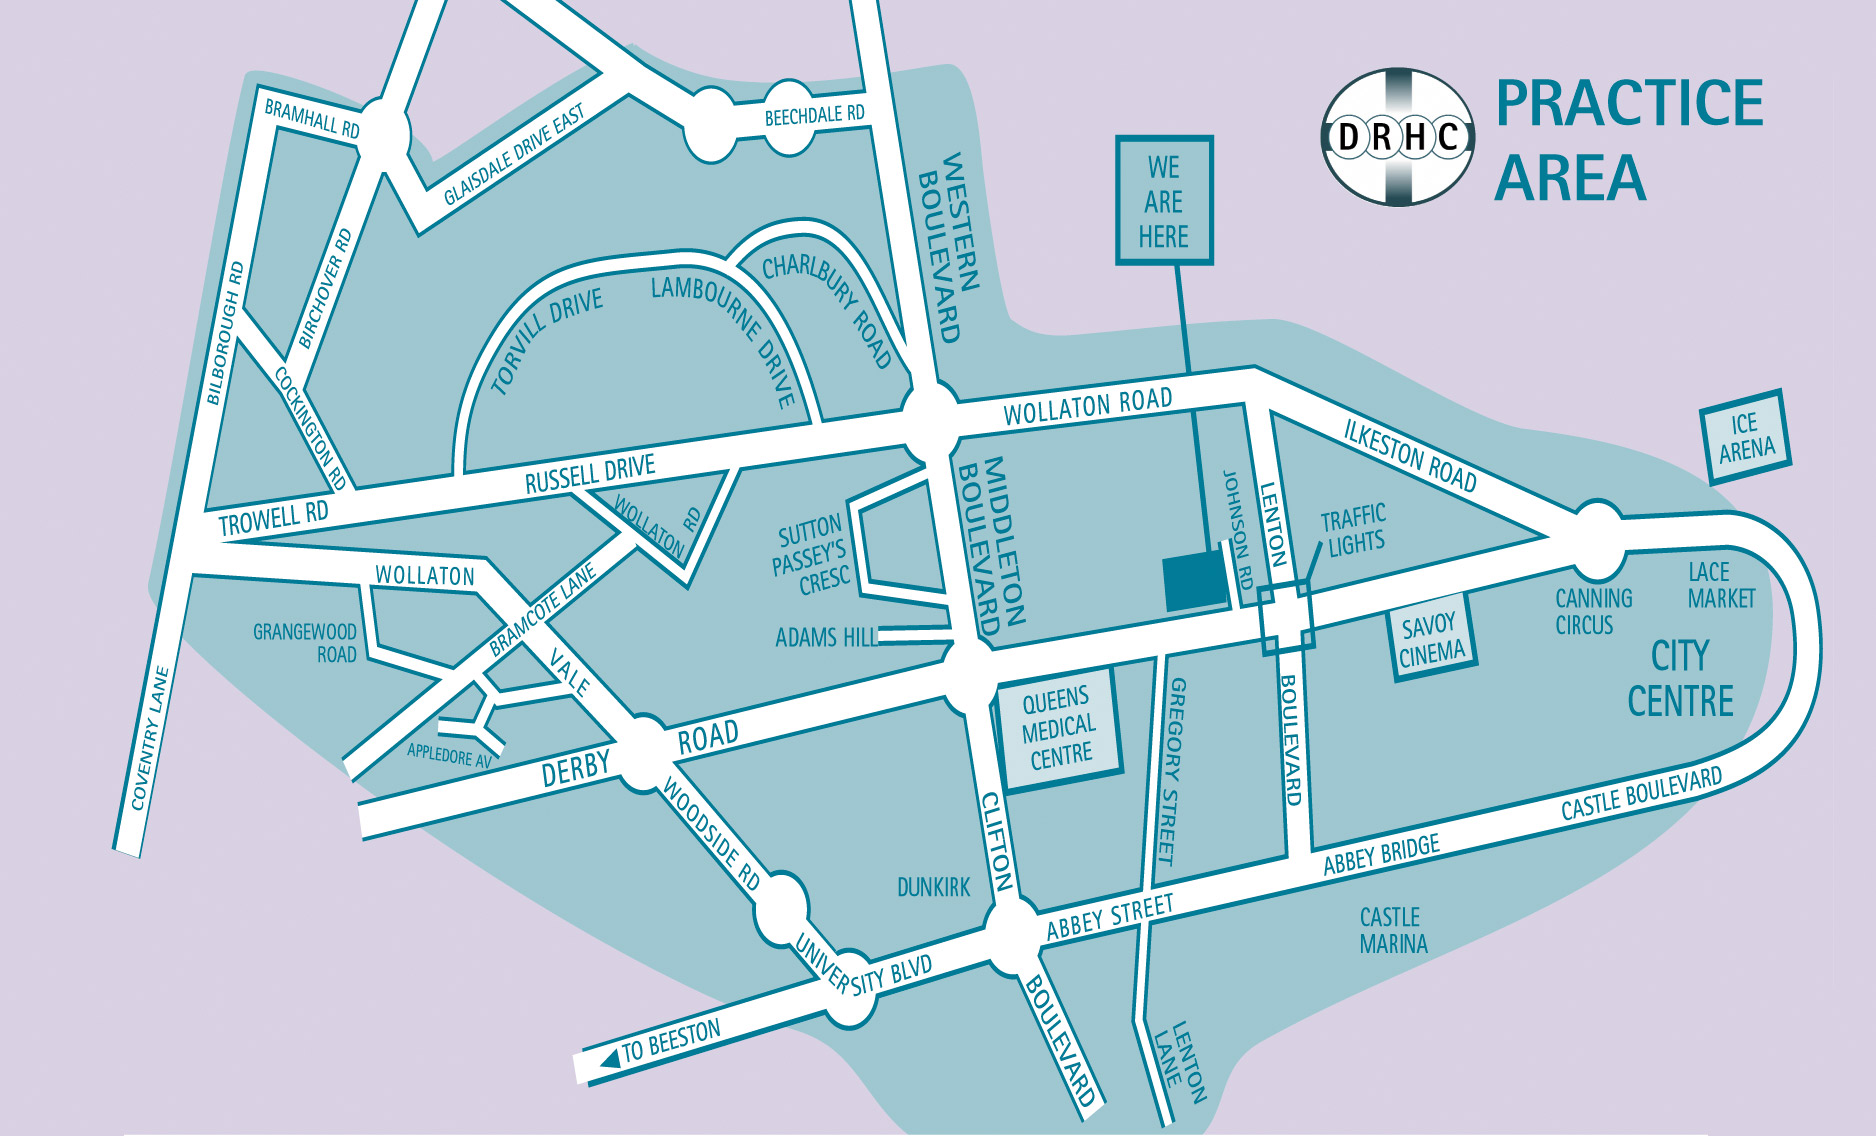 Practice boundary for patient registrations